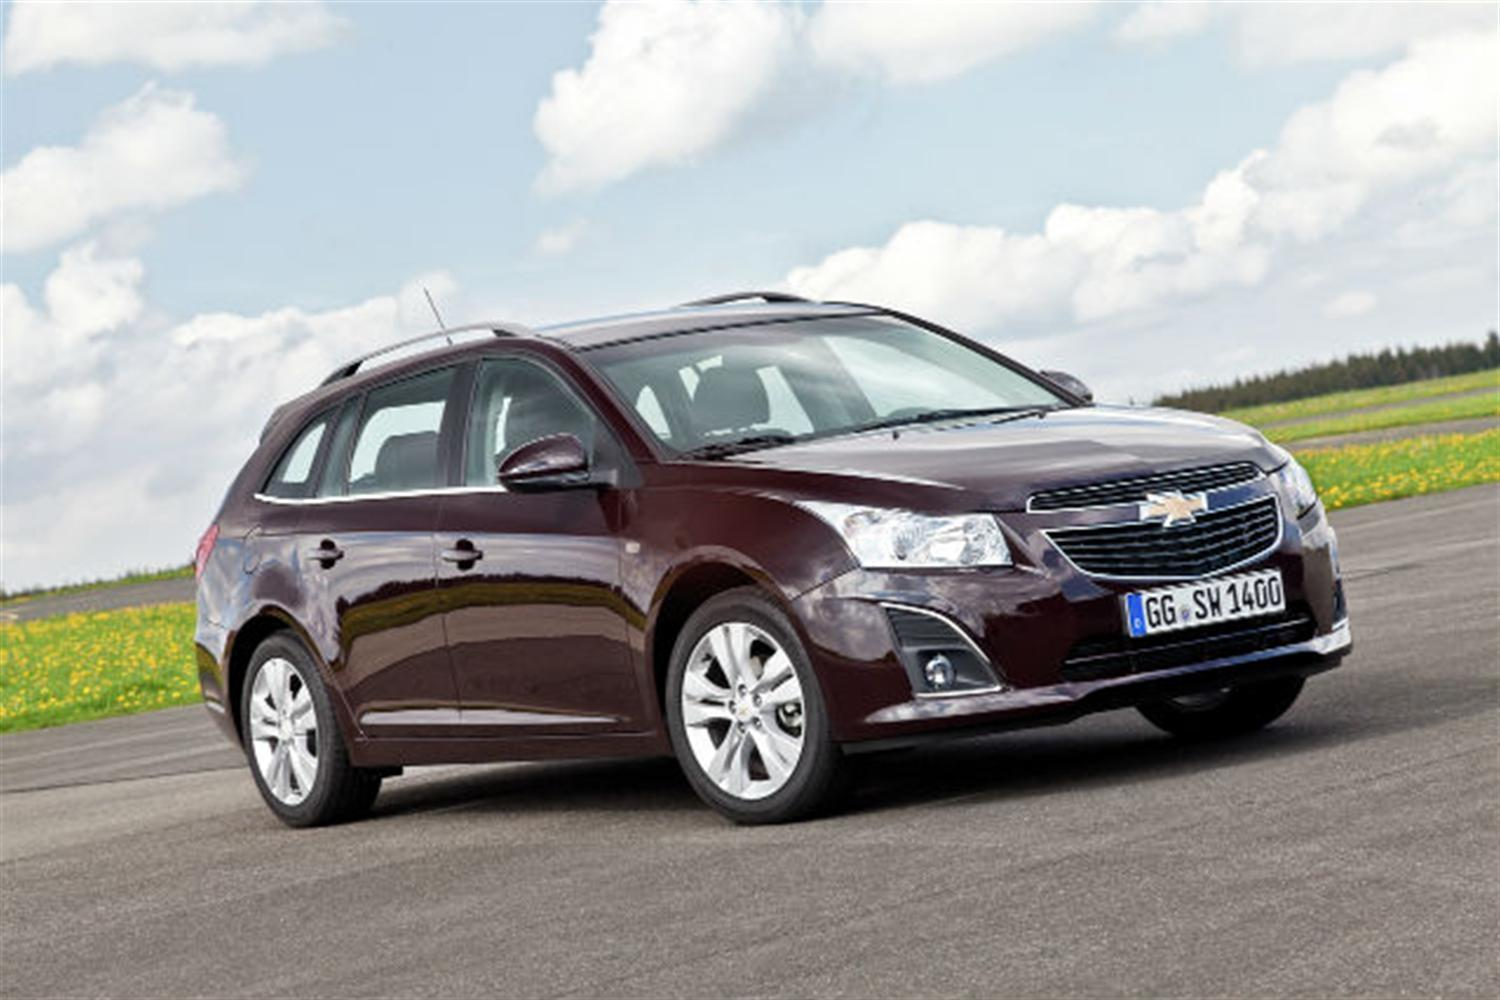 2012 Chevy Cruze Estate Price Revealed